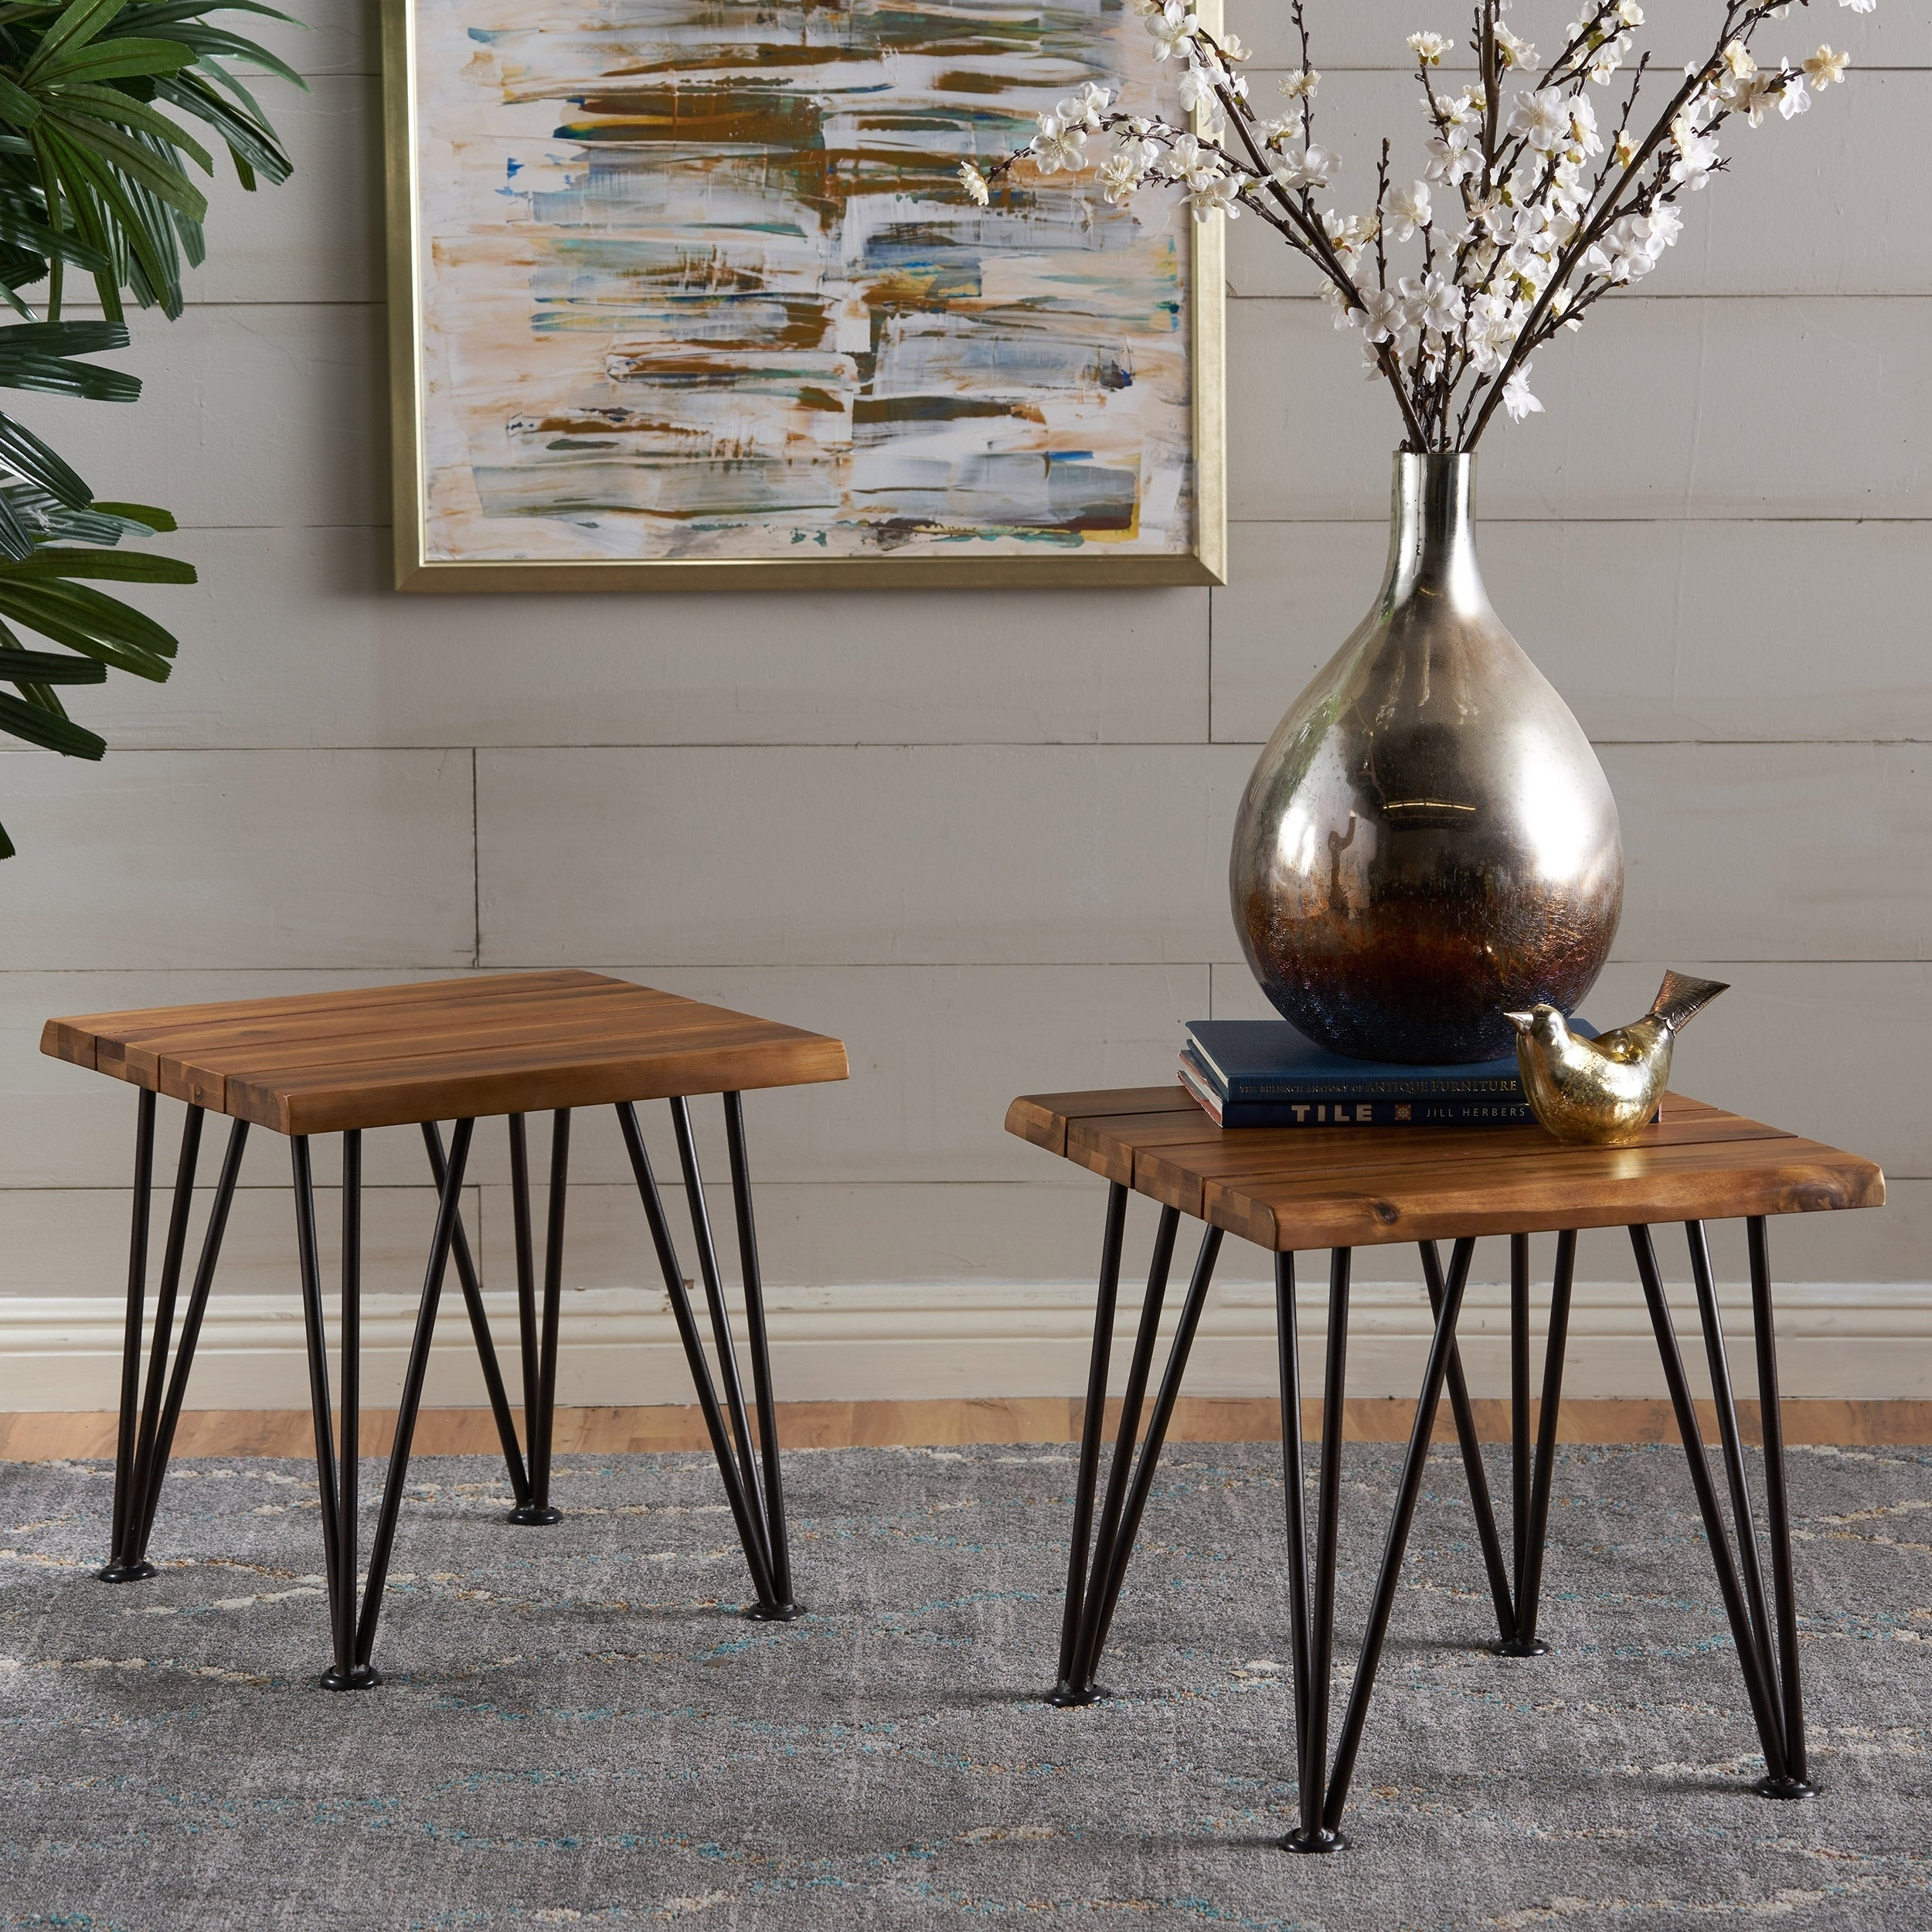 Shop Zion Outdoor Acacia Wood Industrial Side Table (Set Of 2) By  Christopher Knight Home   Free Shipping Today   Overstock.com   16718563